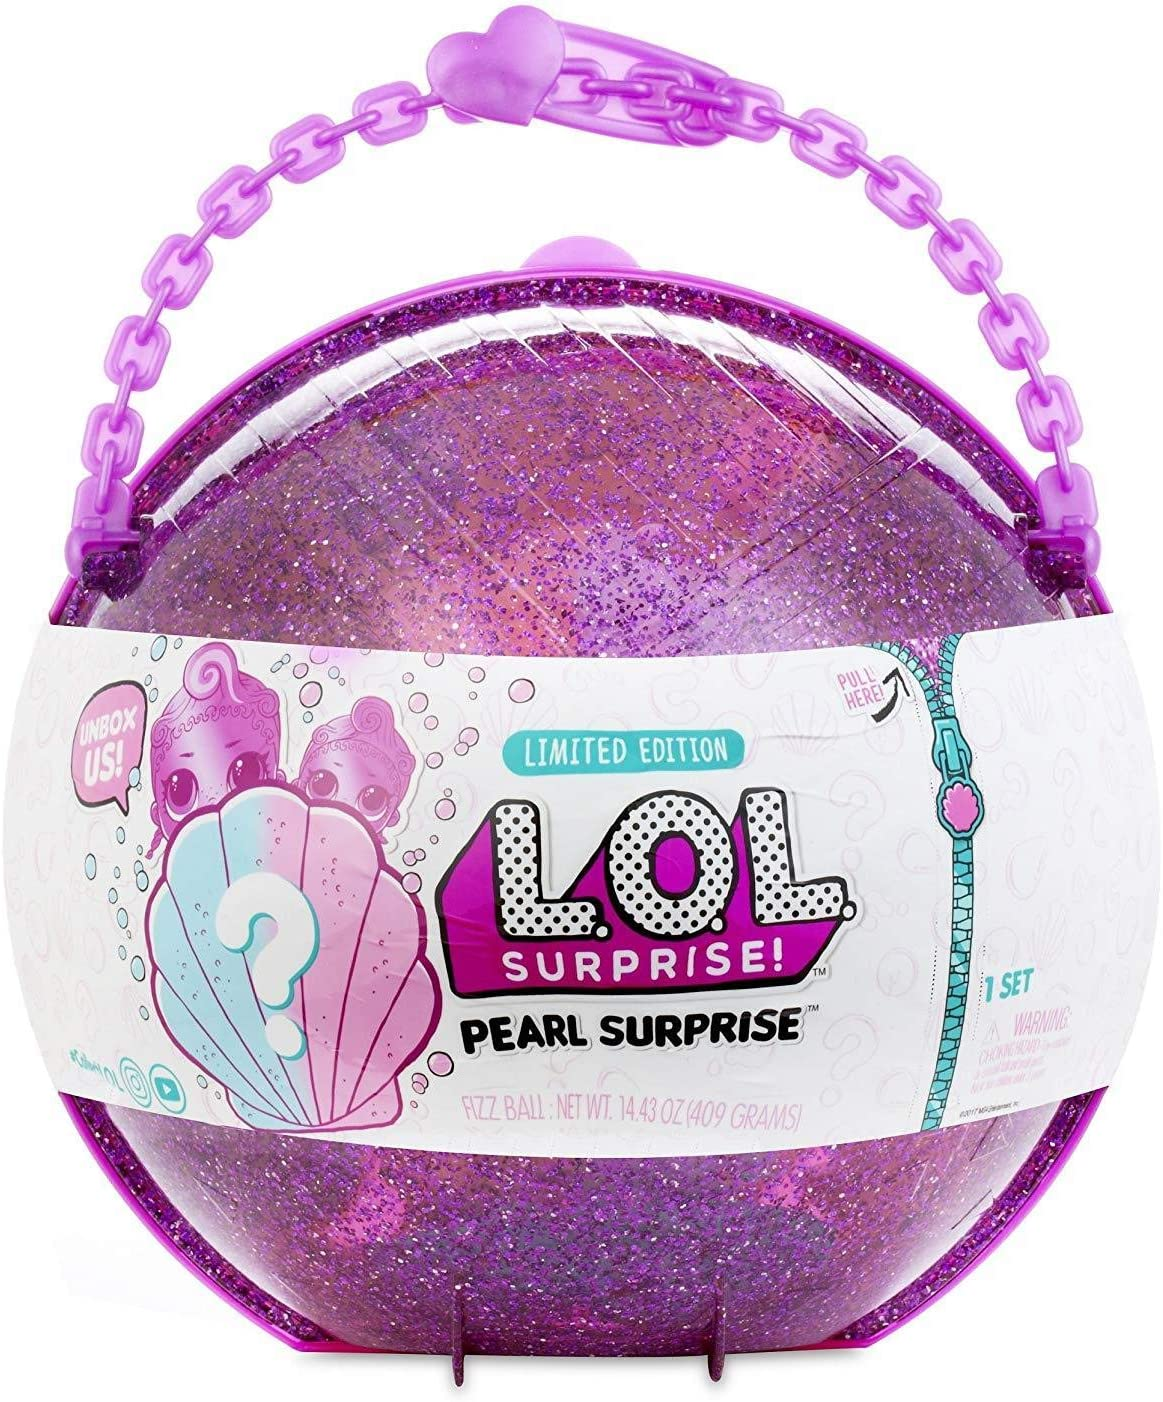 Image of a ball surprise toy in glittery pink